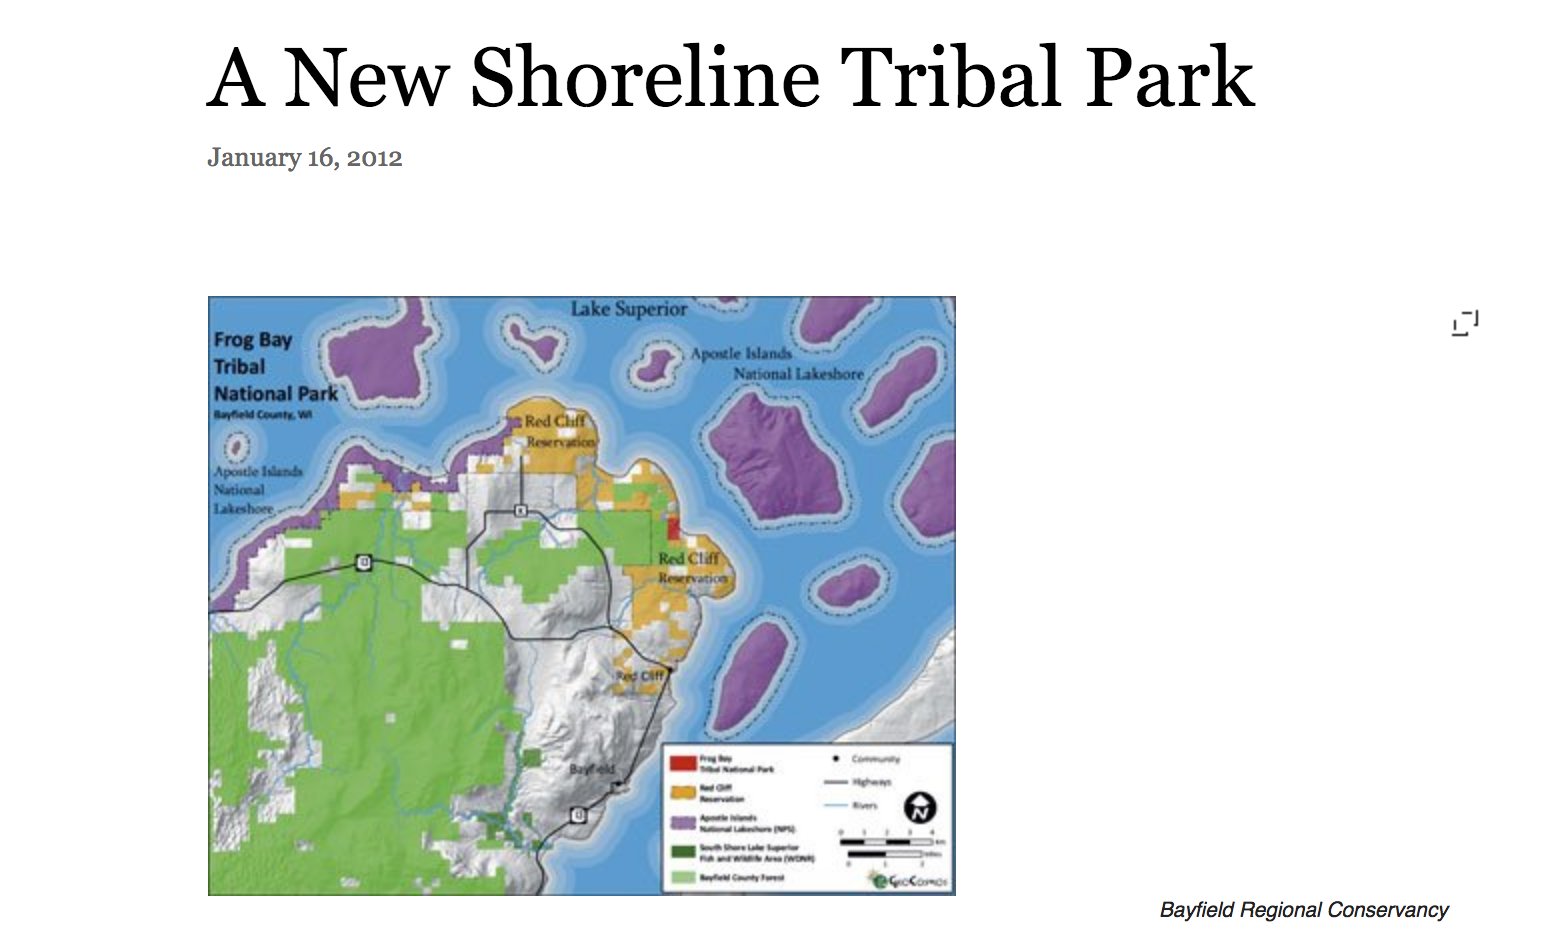 A New Shoreline Tribal Park